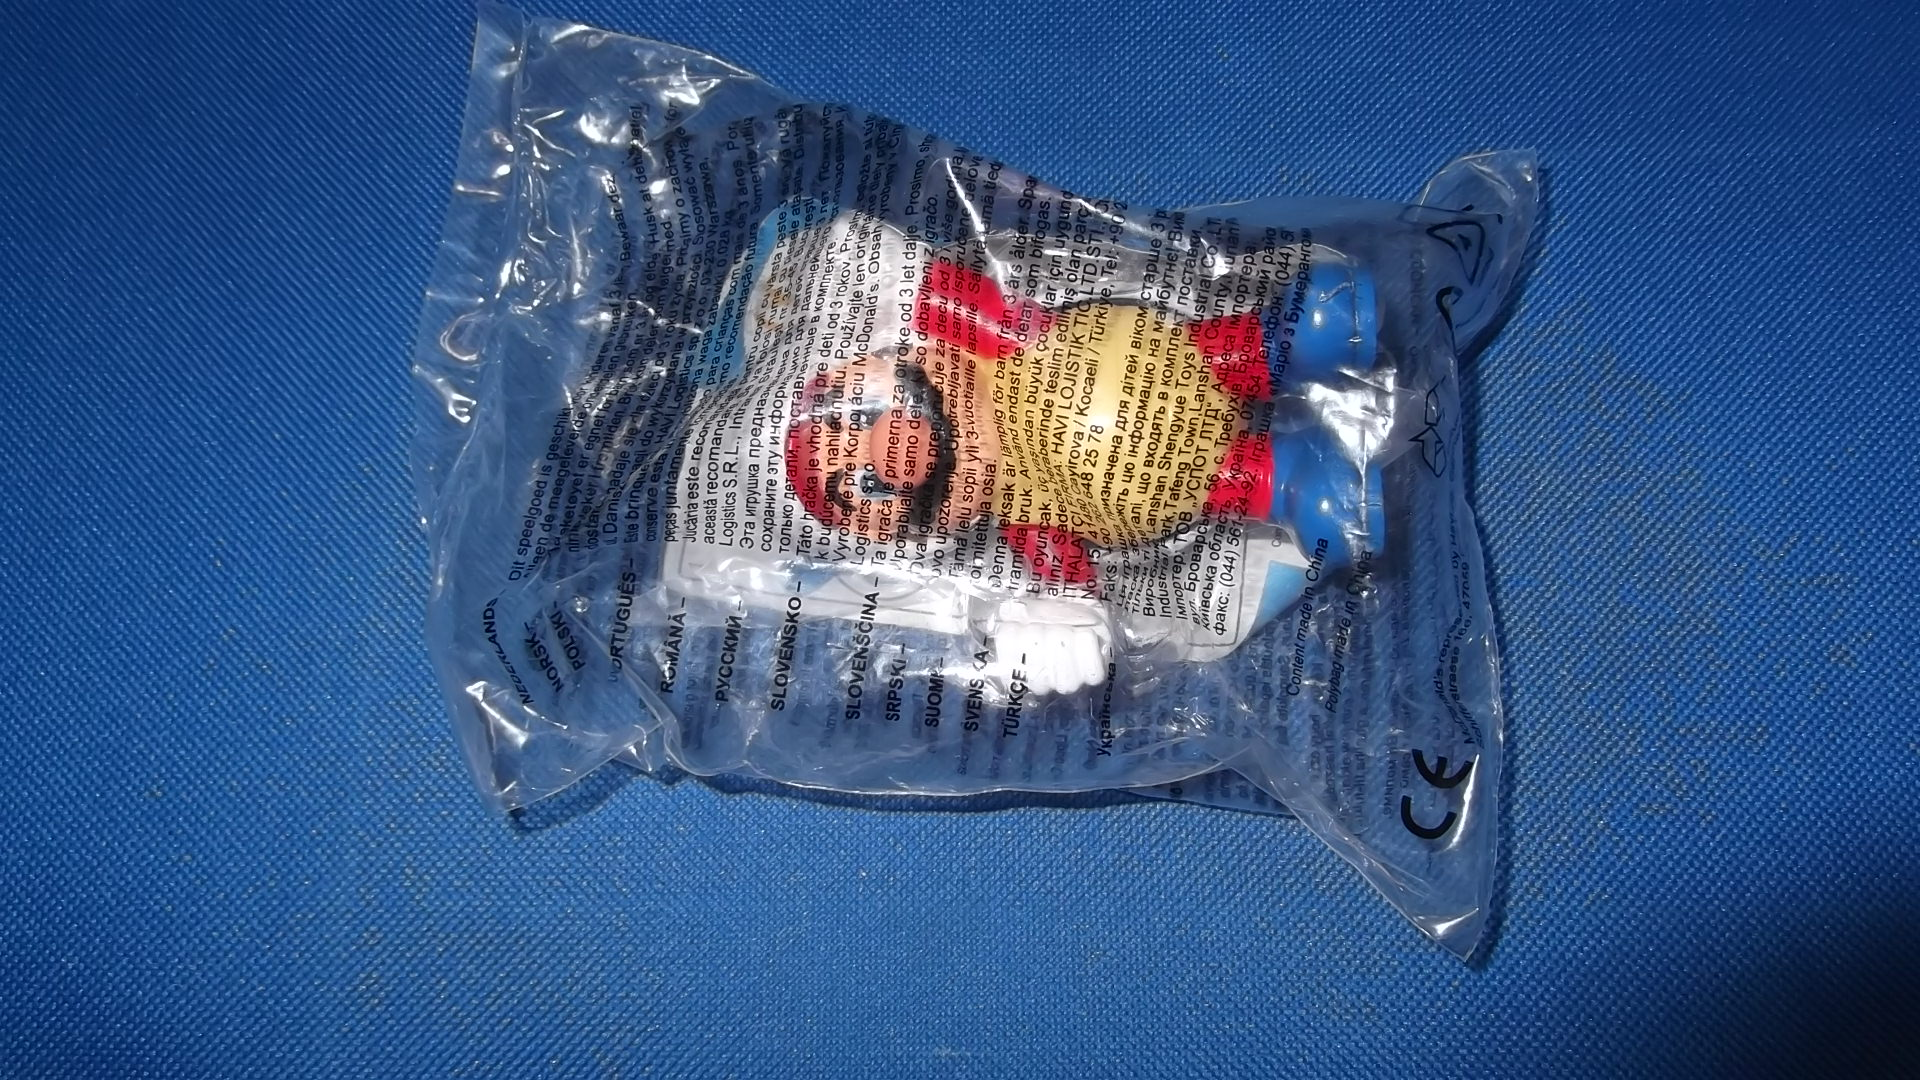 McDonalds Super Mario Boomerang Mario Toy From 2015 New